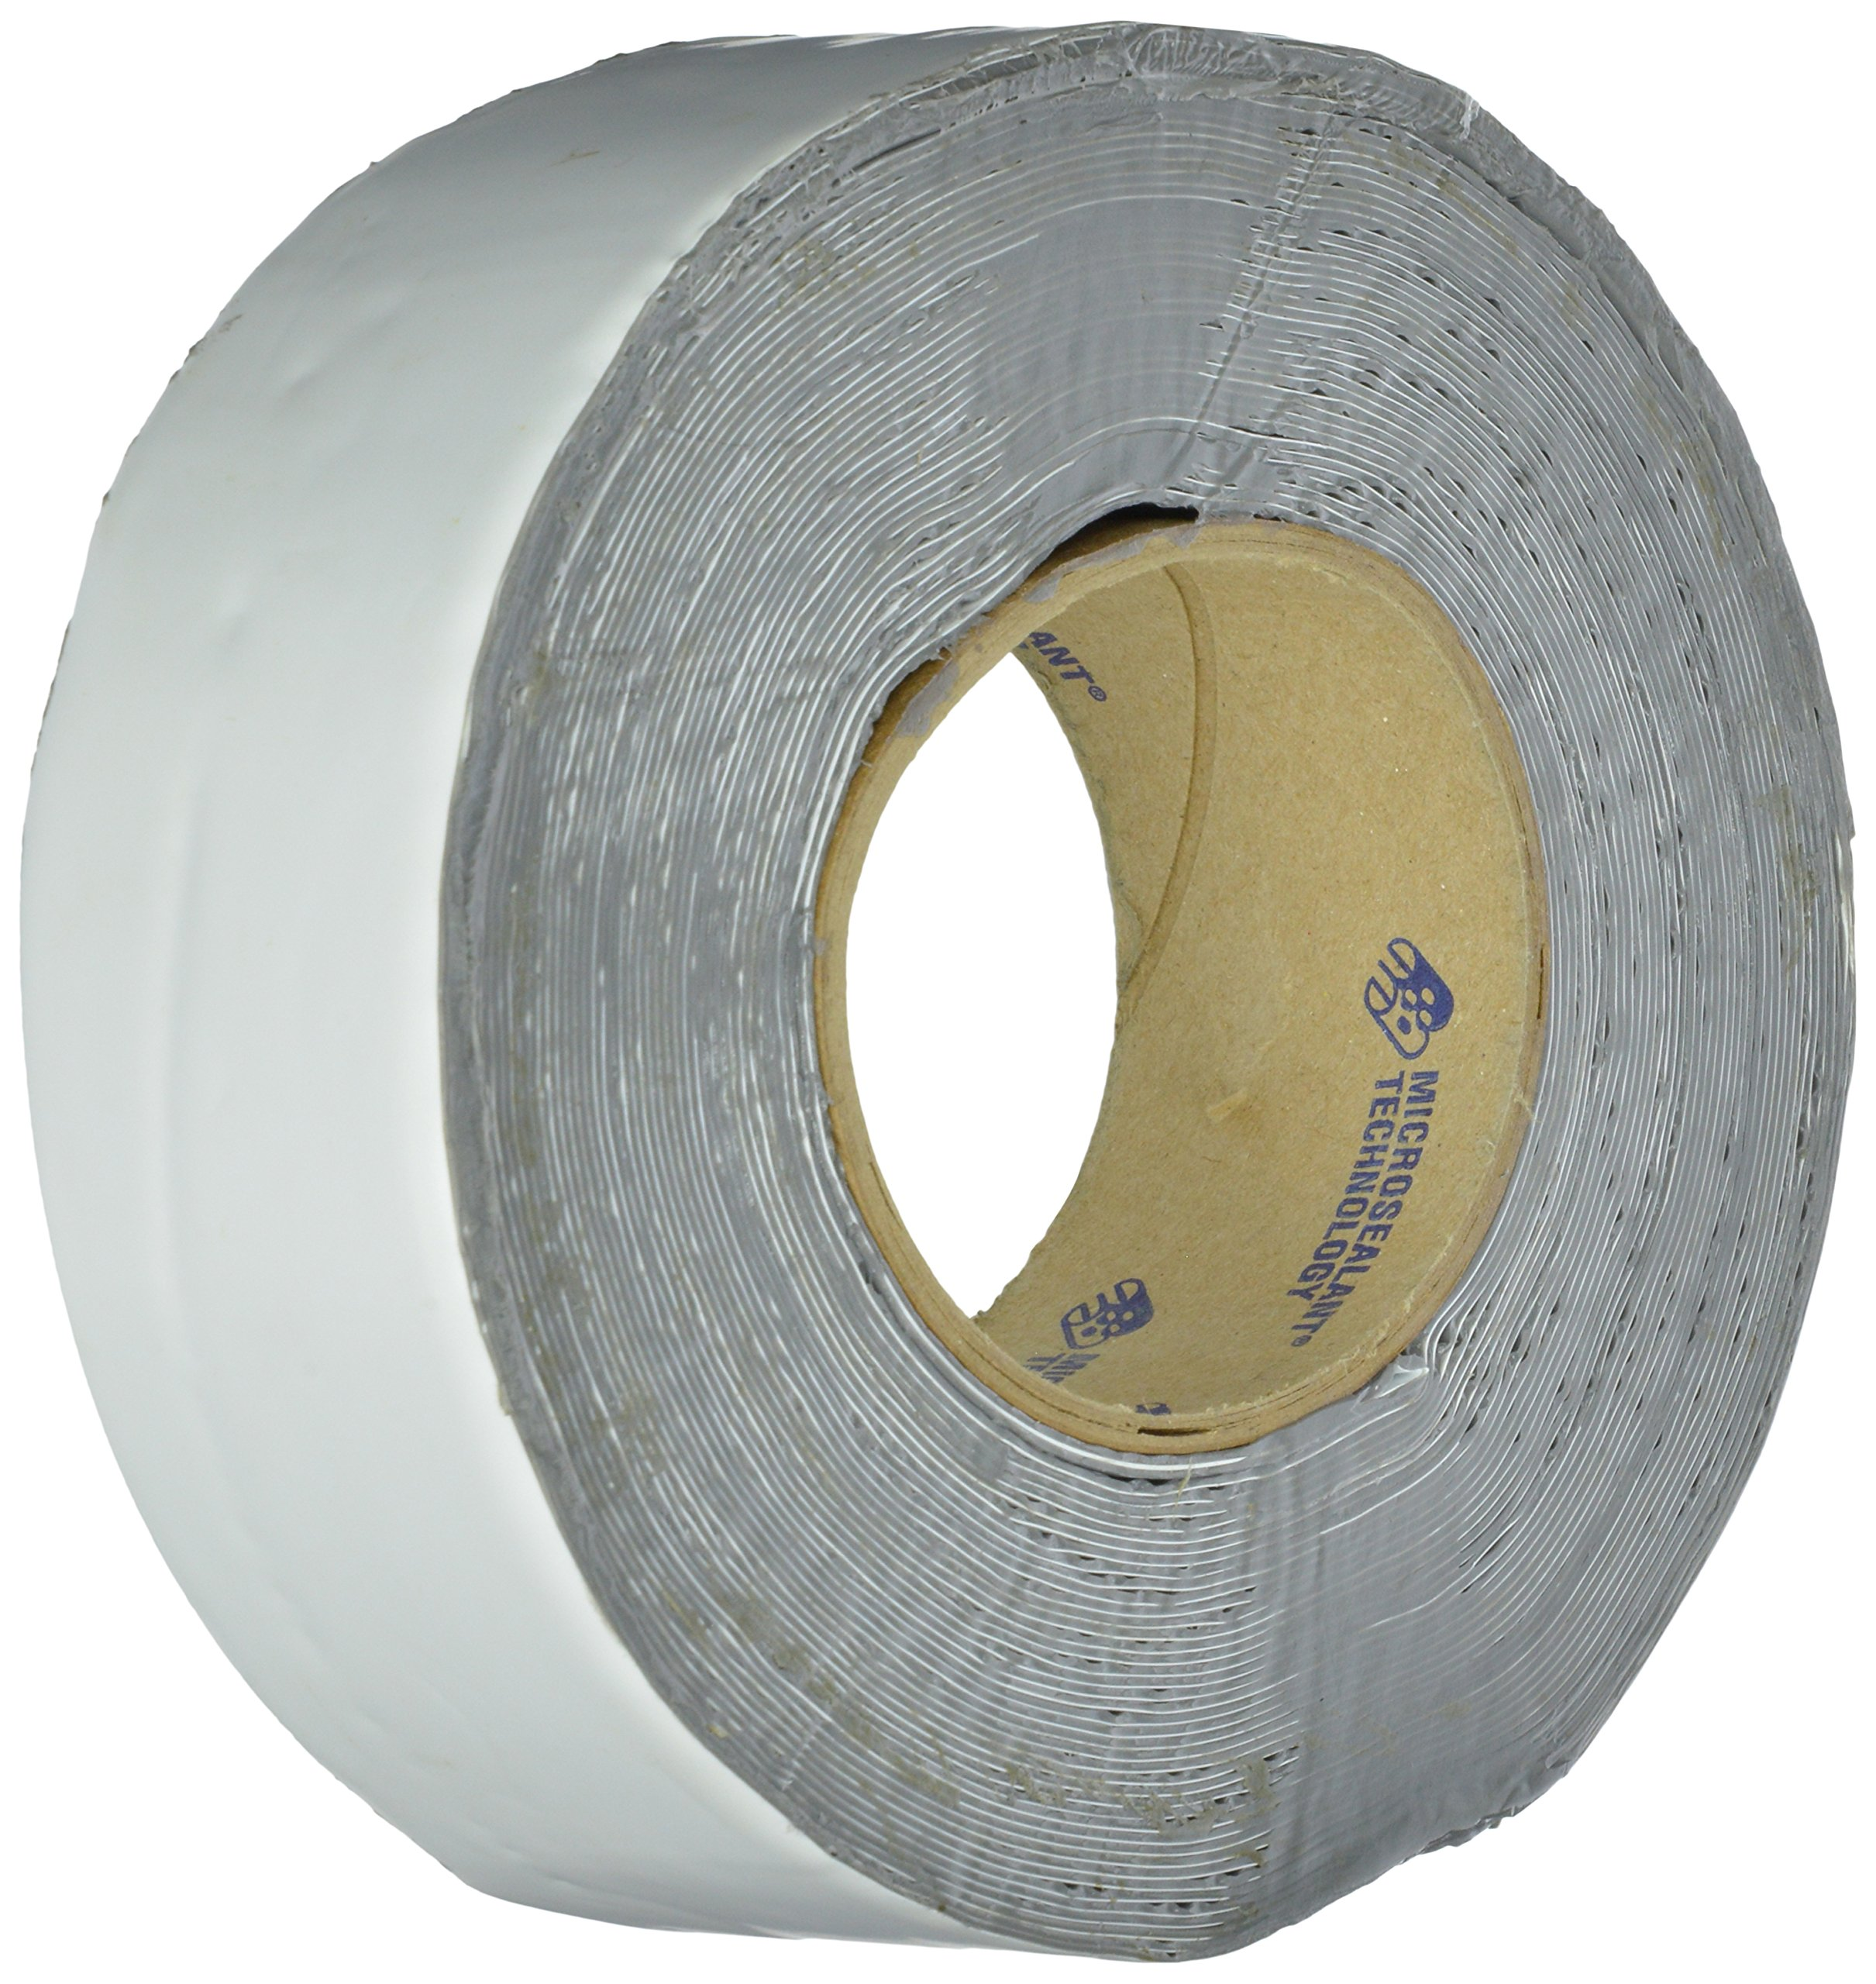 "EternaBond RSW-2-50 RoofSeal Sealant Tape, White - 2"" x 50' - 91CmF8Ow2DL - EternaBond RSW-2-50 RoofSeal Sealant Tape, White – 2″ x 50′"